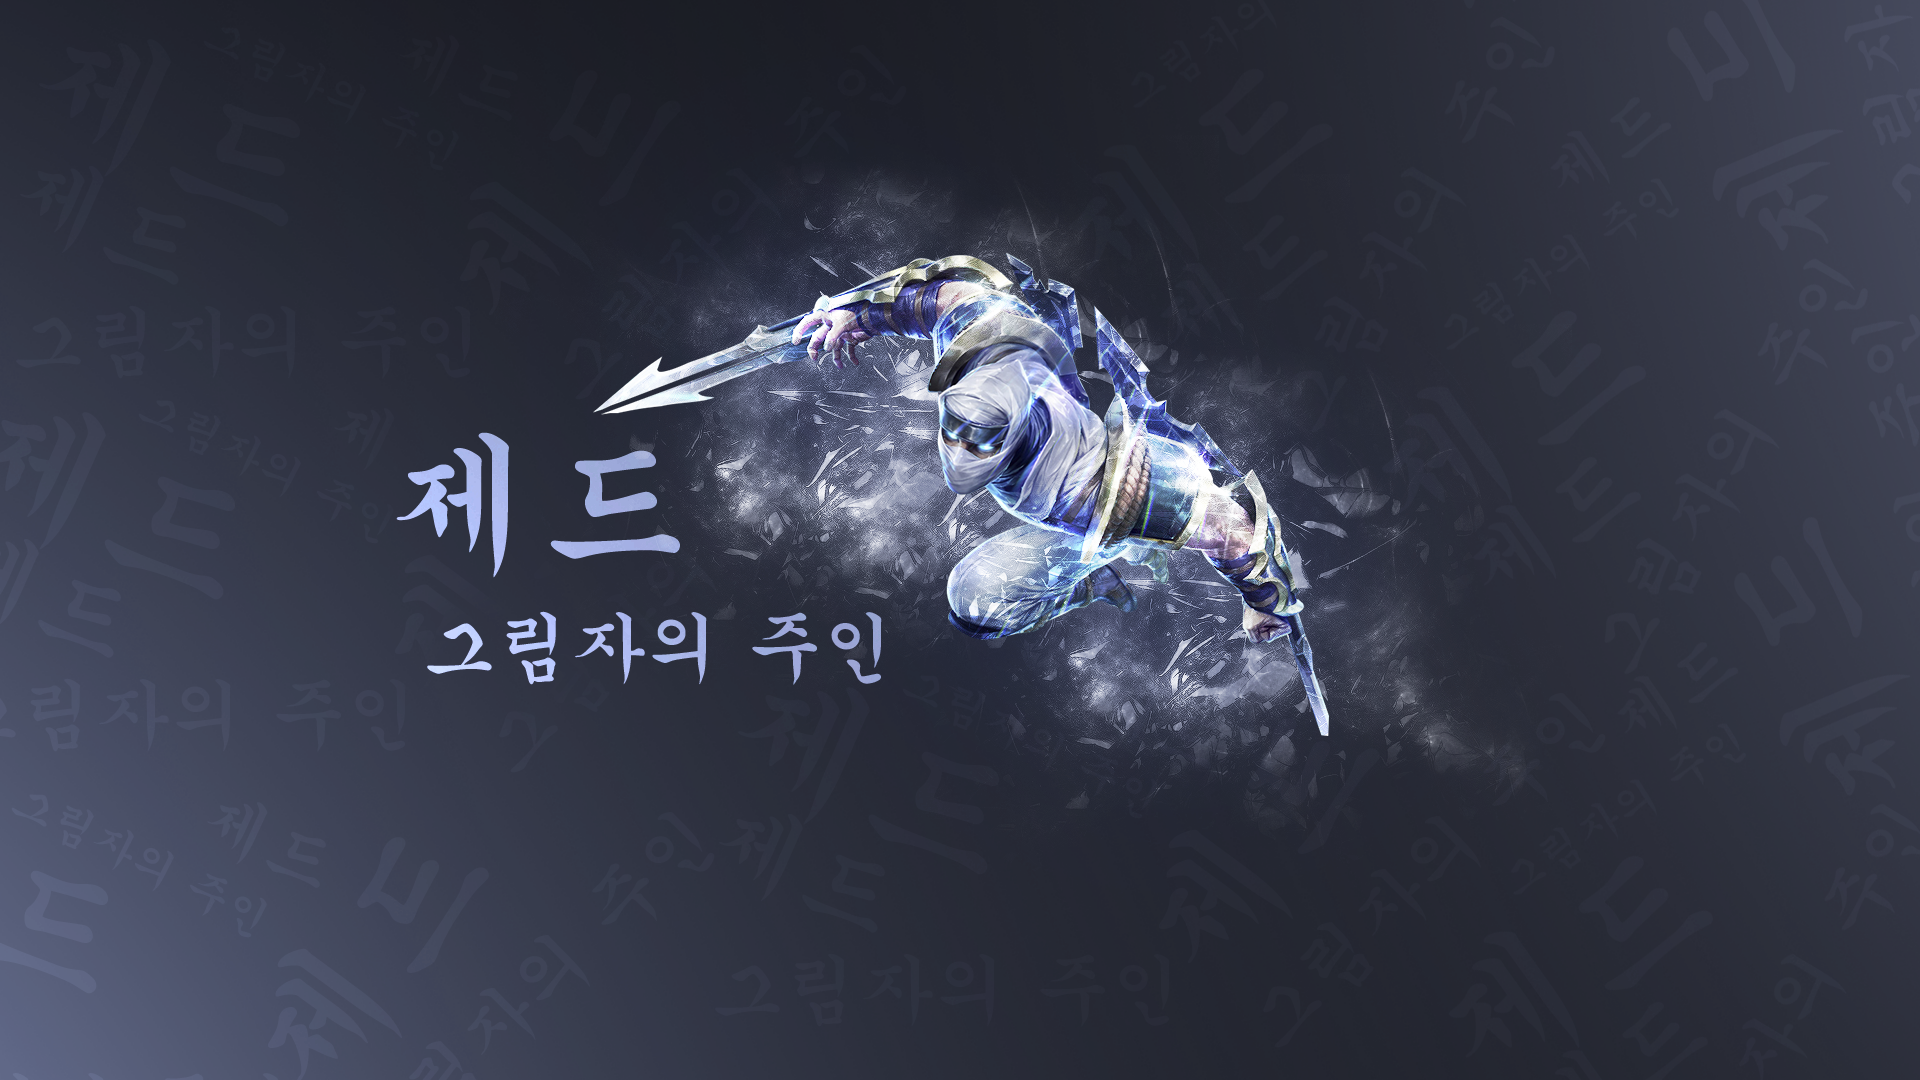 League Of Legends Shockblade Zed Wallpaper Free Is Cool Wallpapers